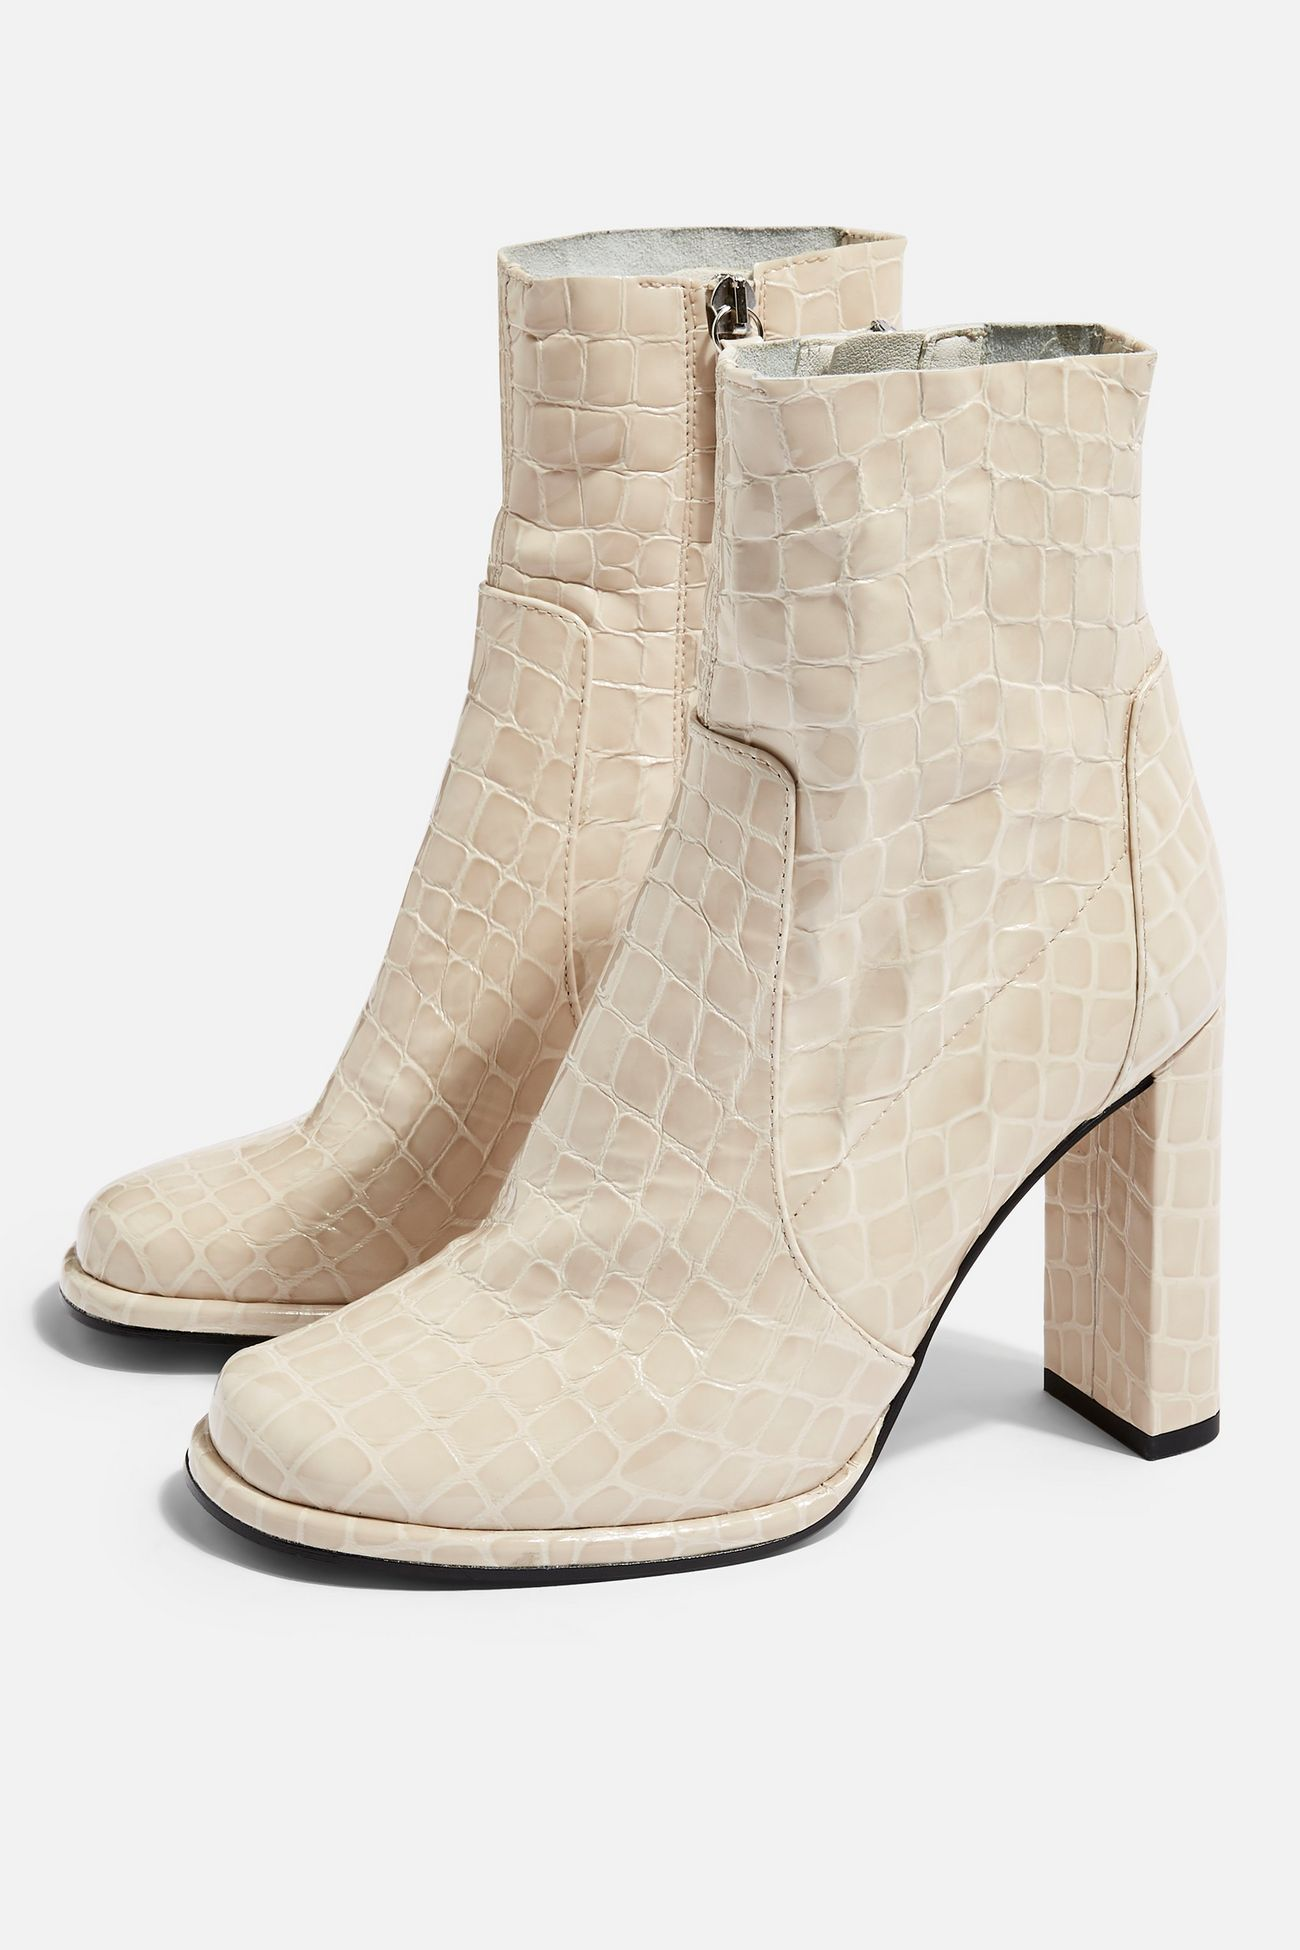 Hattie High Ankle Boots